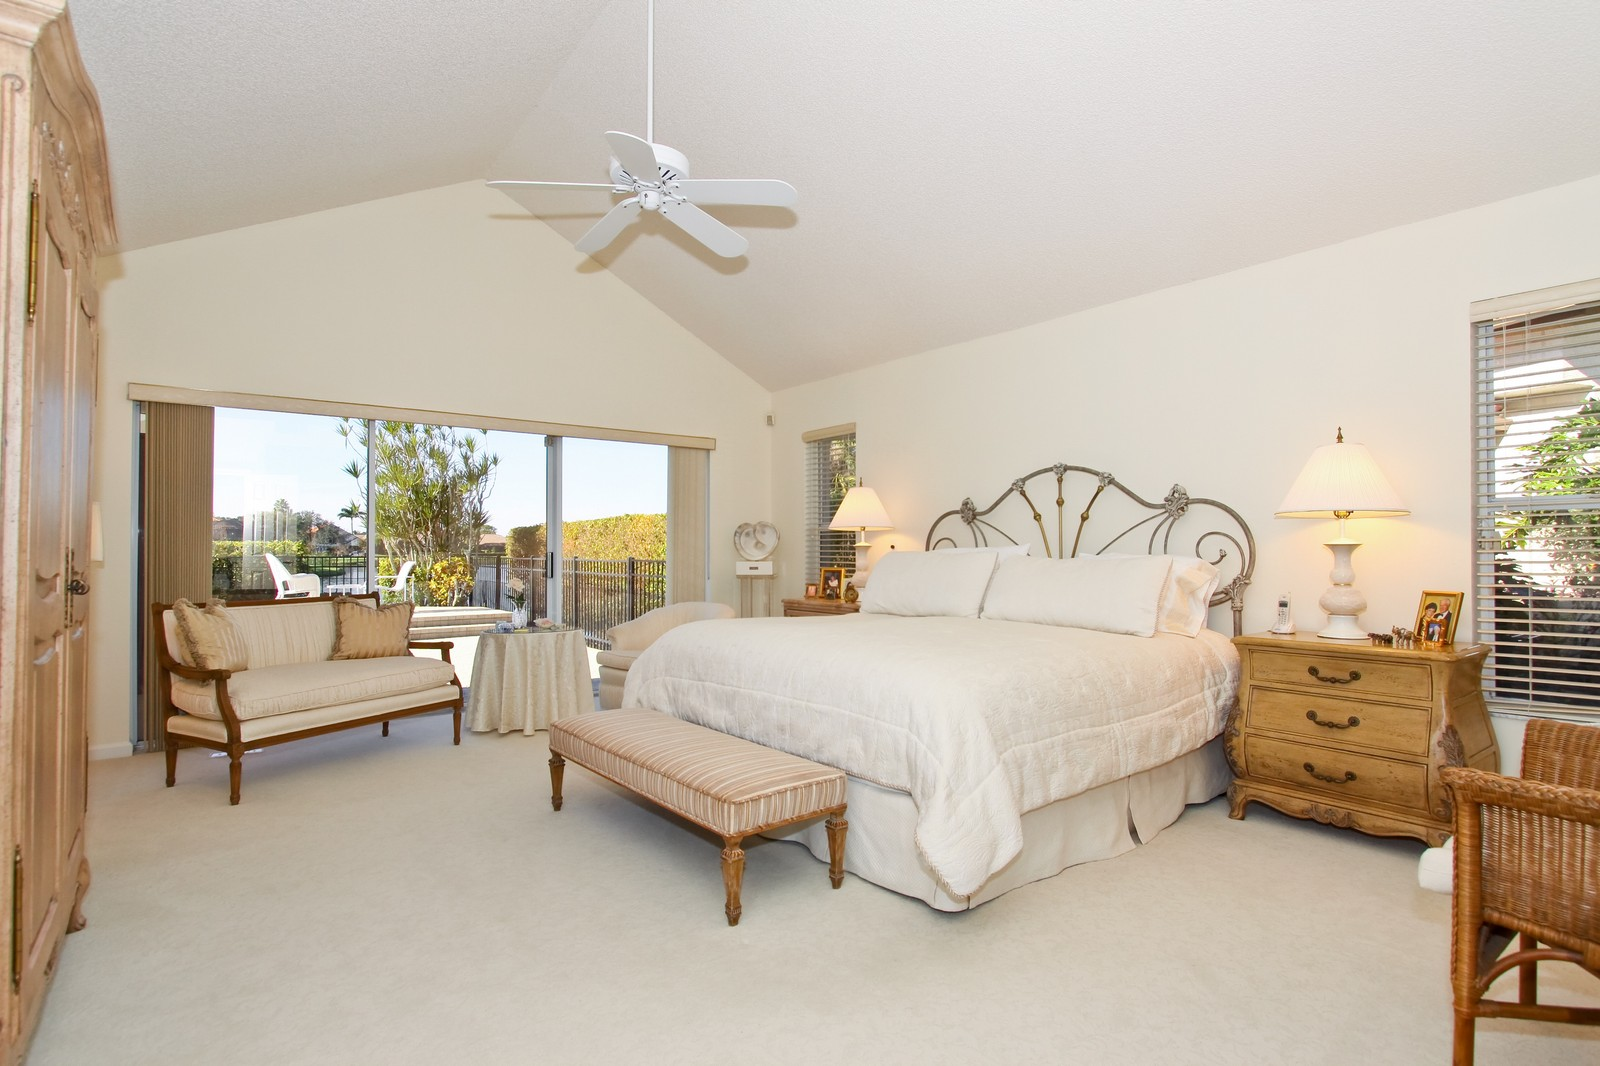 Real Estate Photography - 17799 Heather Ridge, Boca Raton, FL, 33498 - Master Bedroom